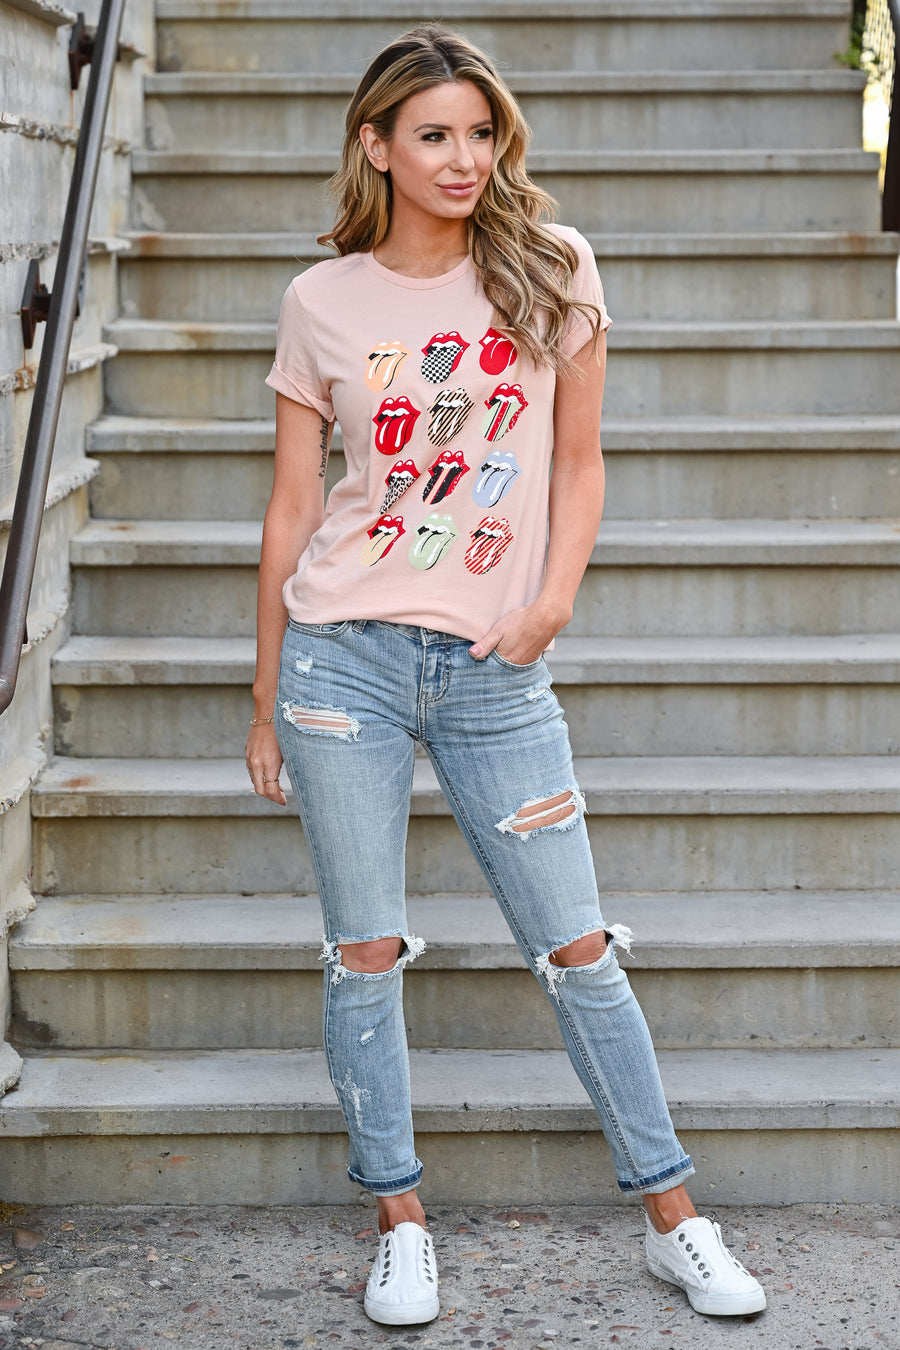 Sugar Lips Graphic Tee - Peach womens casual short sleeve graphic tongue tee closet candy sitting